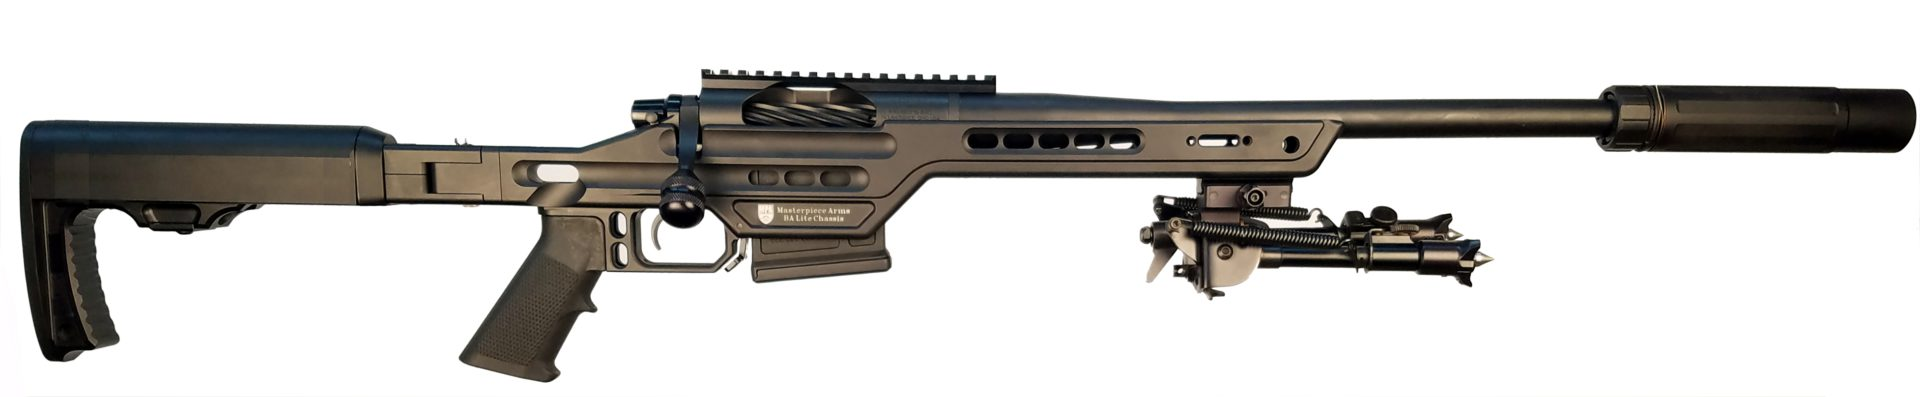 mpa-ba-compact-suppressor-ready-rifle